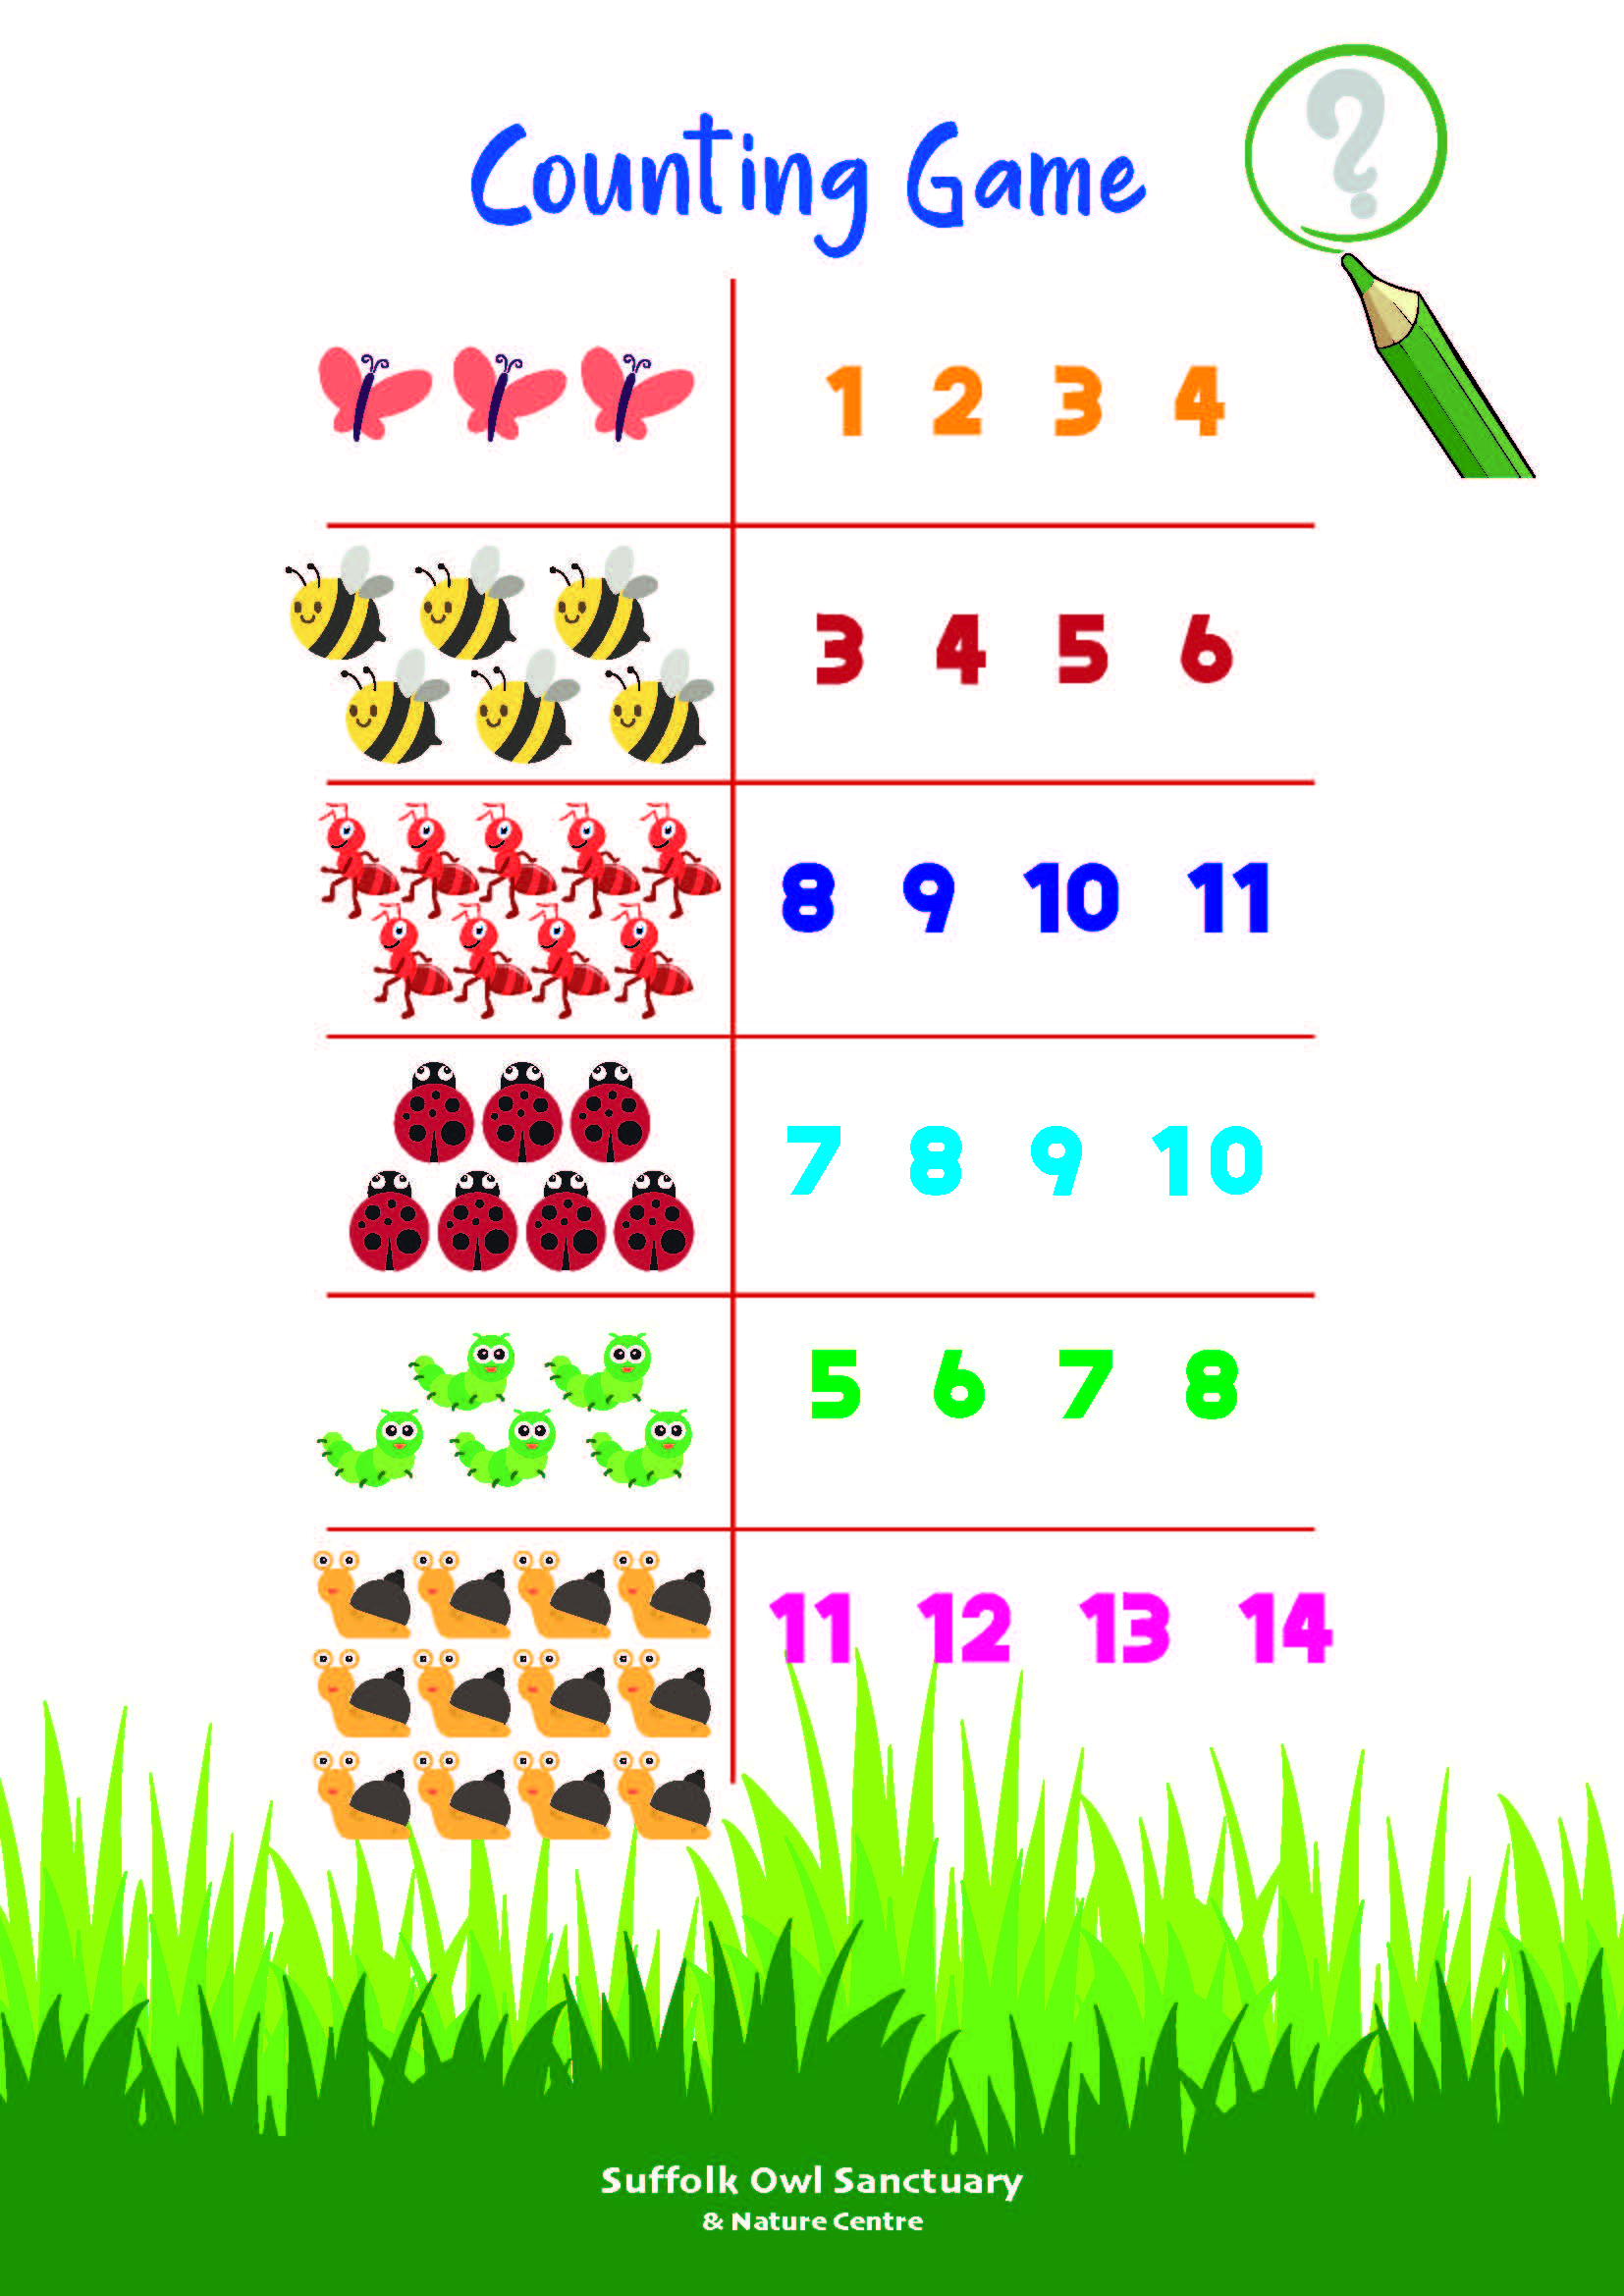 Counting Game Activity Sheet  image